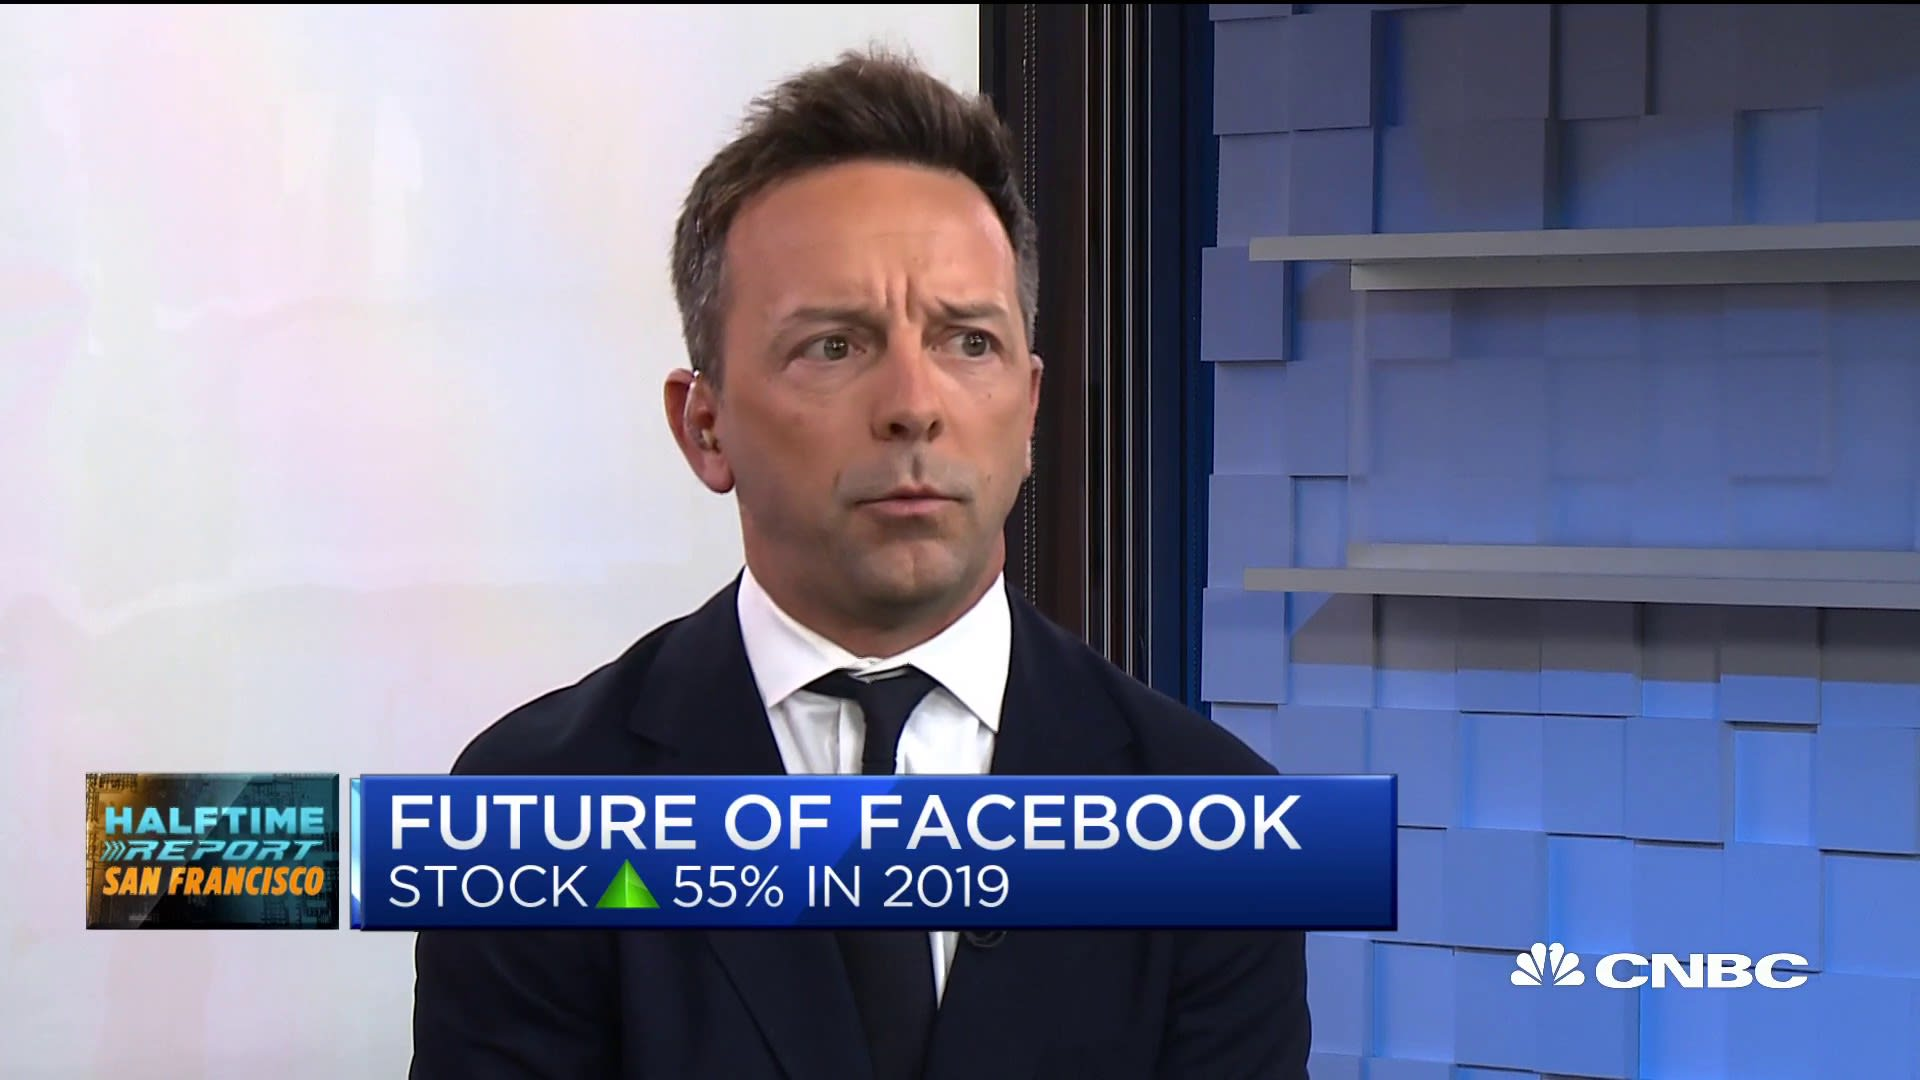 Altimeter Capital's Brad Gerstner on Facebook's future in two years